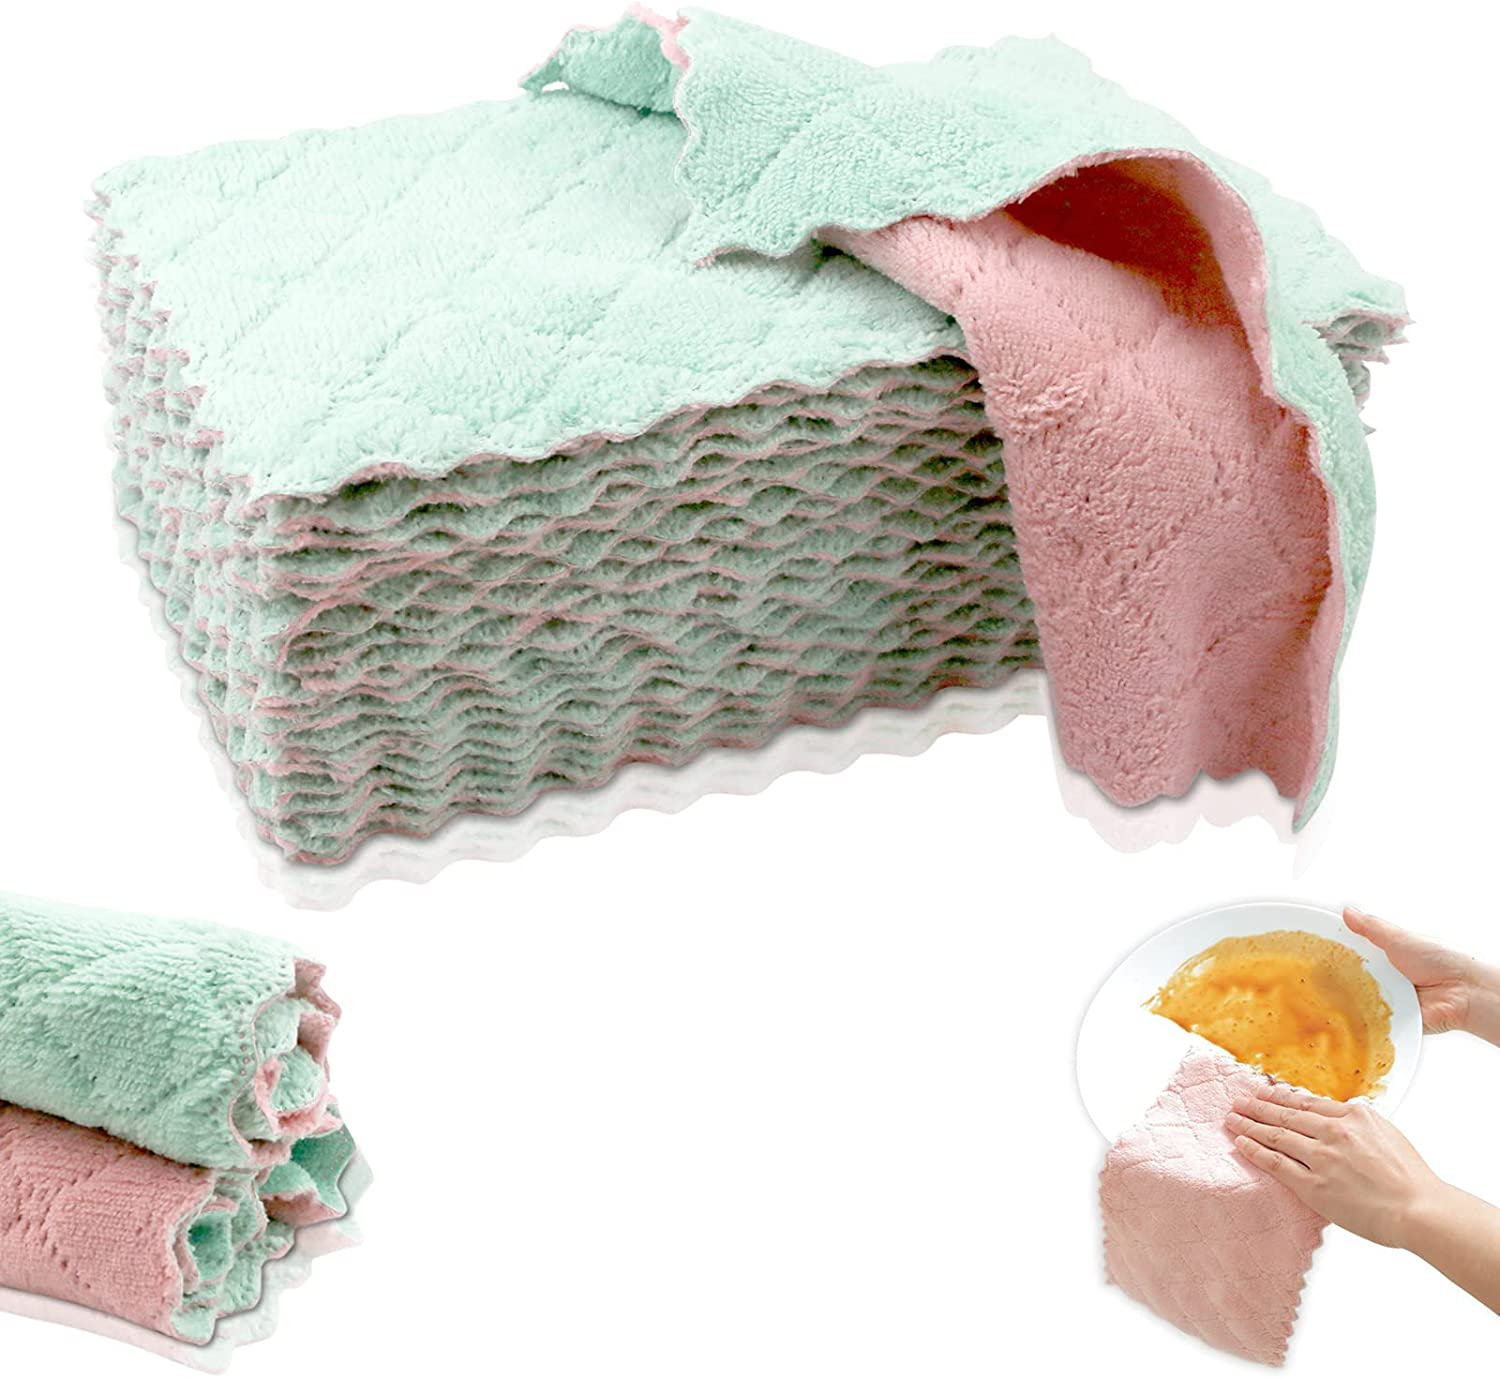 Oruuum 50 Pack Home Kitchen Dish Cloth Towels, Non-Sticky Oil and Non-Lint Dishwashing Cloth, Housework Fast Drying Cleaning Towel, Household Kitchen Supplies